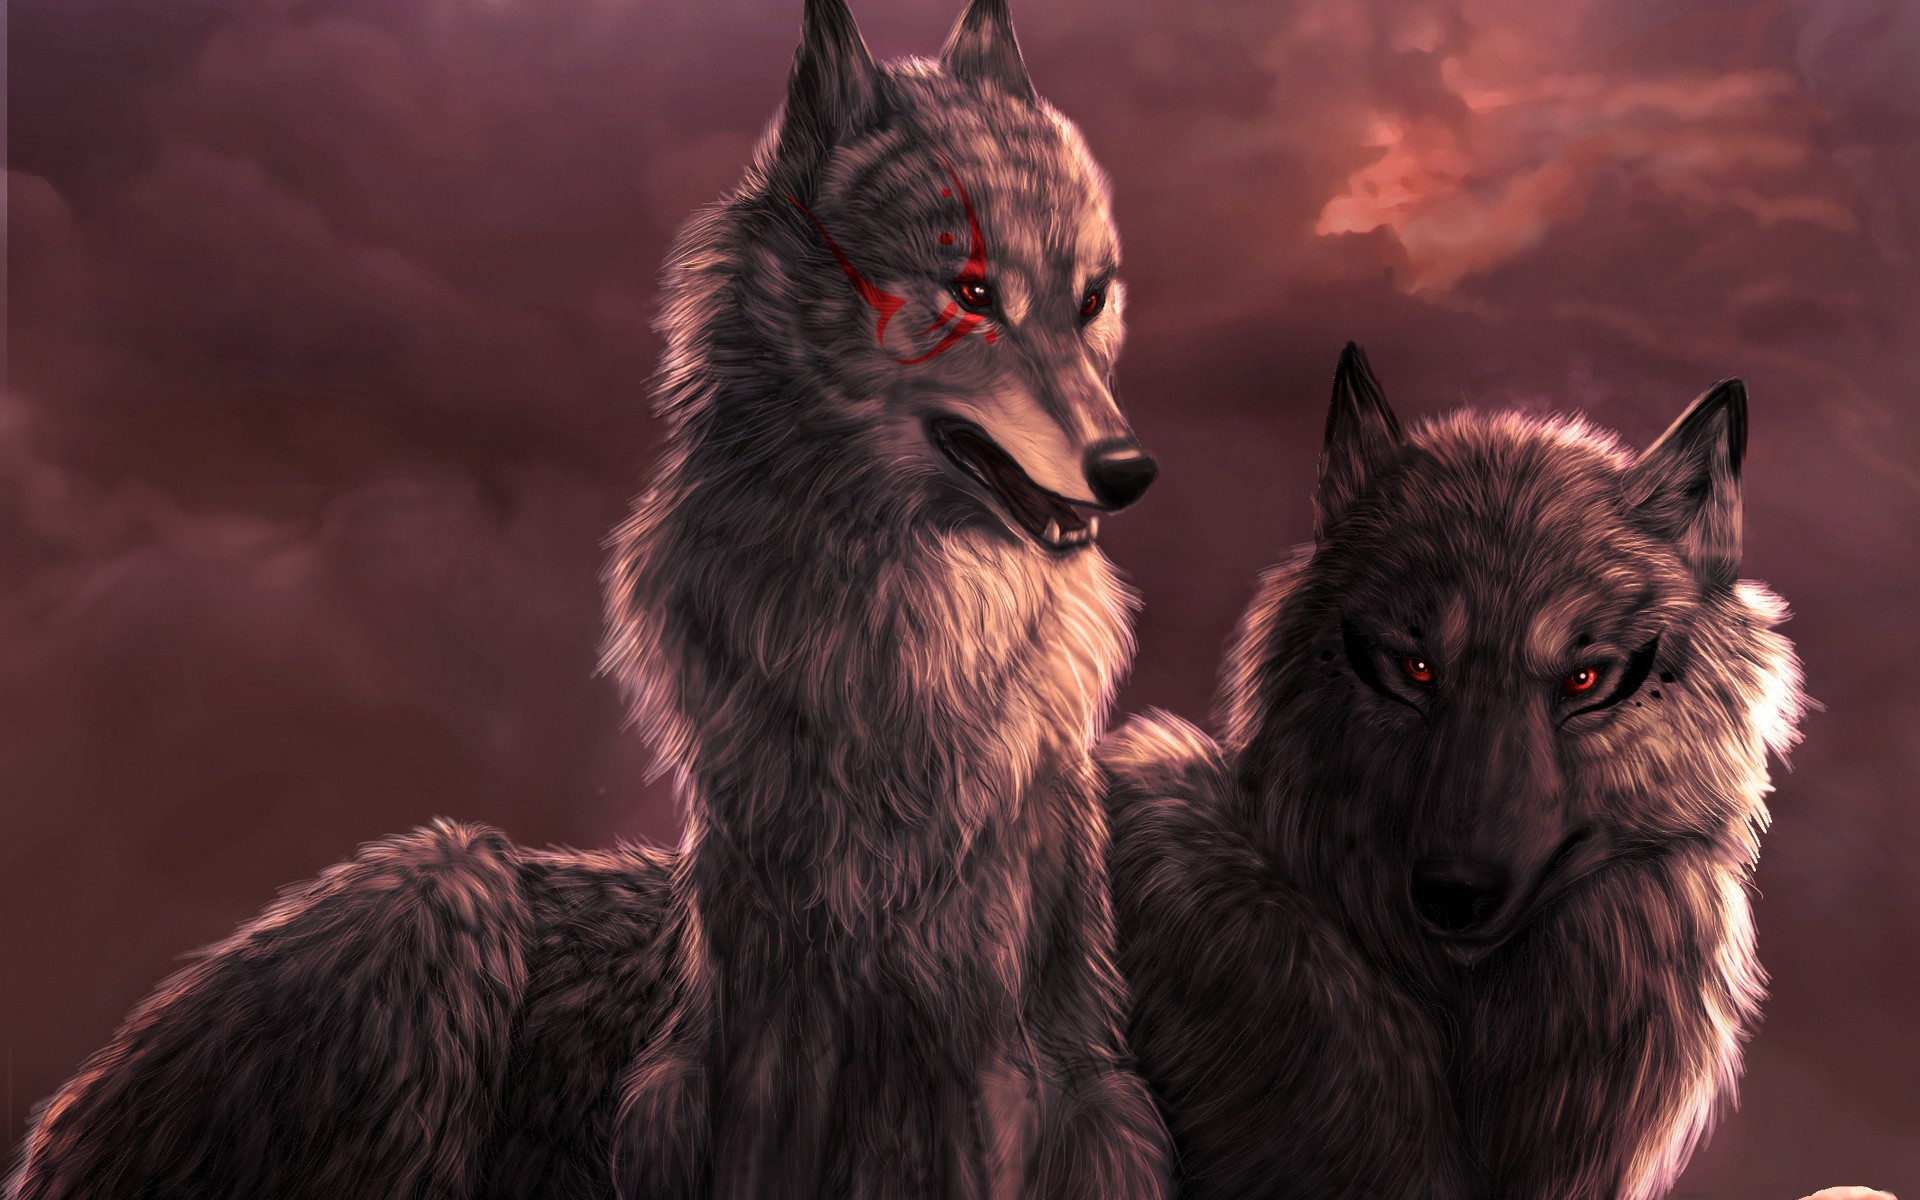 Red Eyes Wolf Artwork 2609389 Hd Wallpaper Backgrounds Download